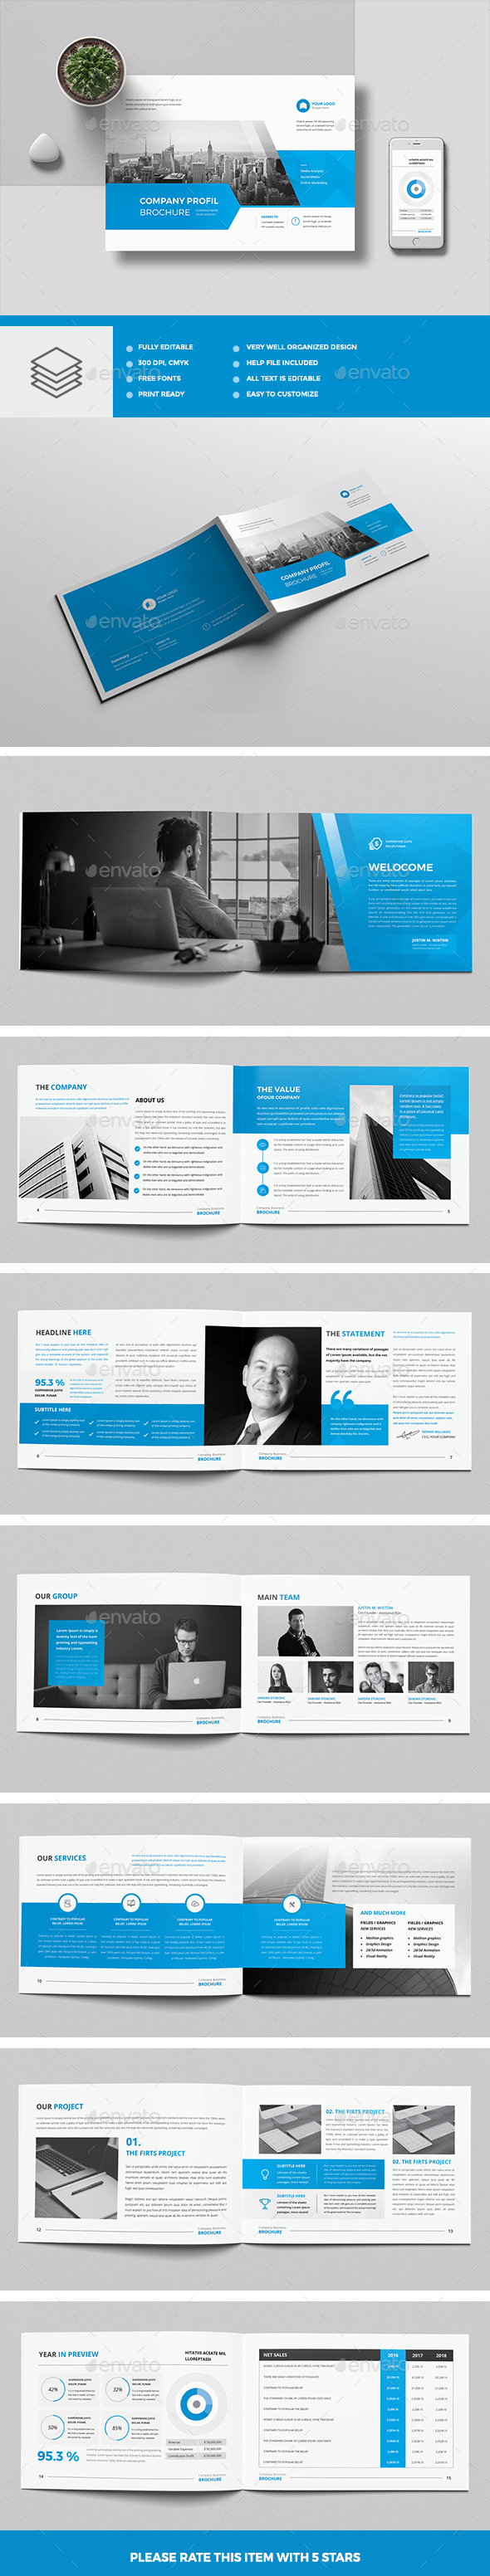 The Blue Corporate Brochure Landscape - Corporate Brochures